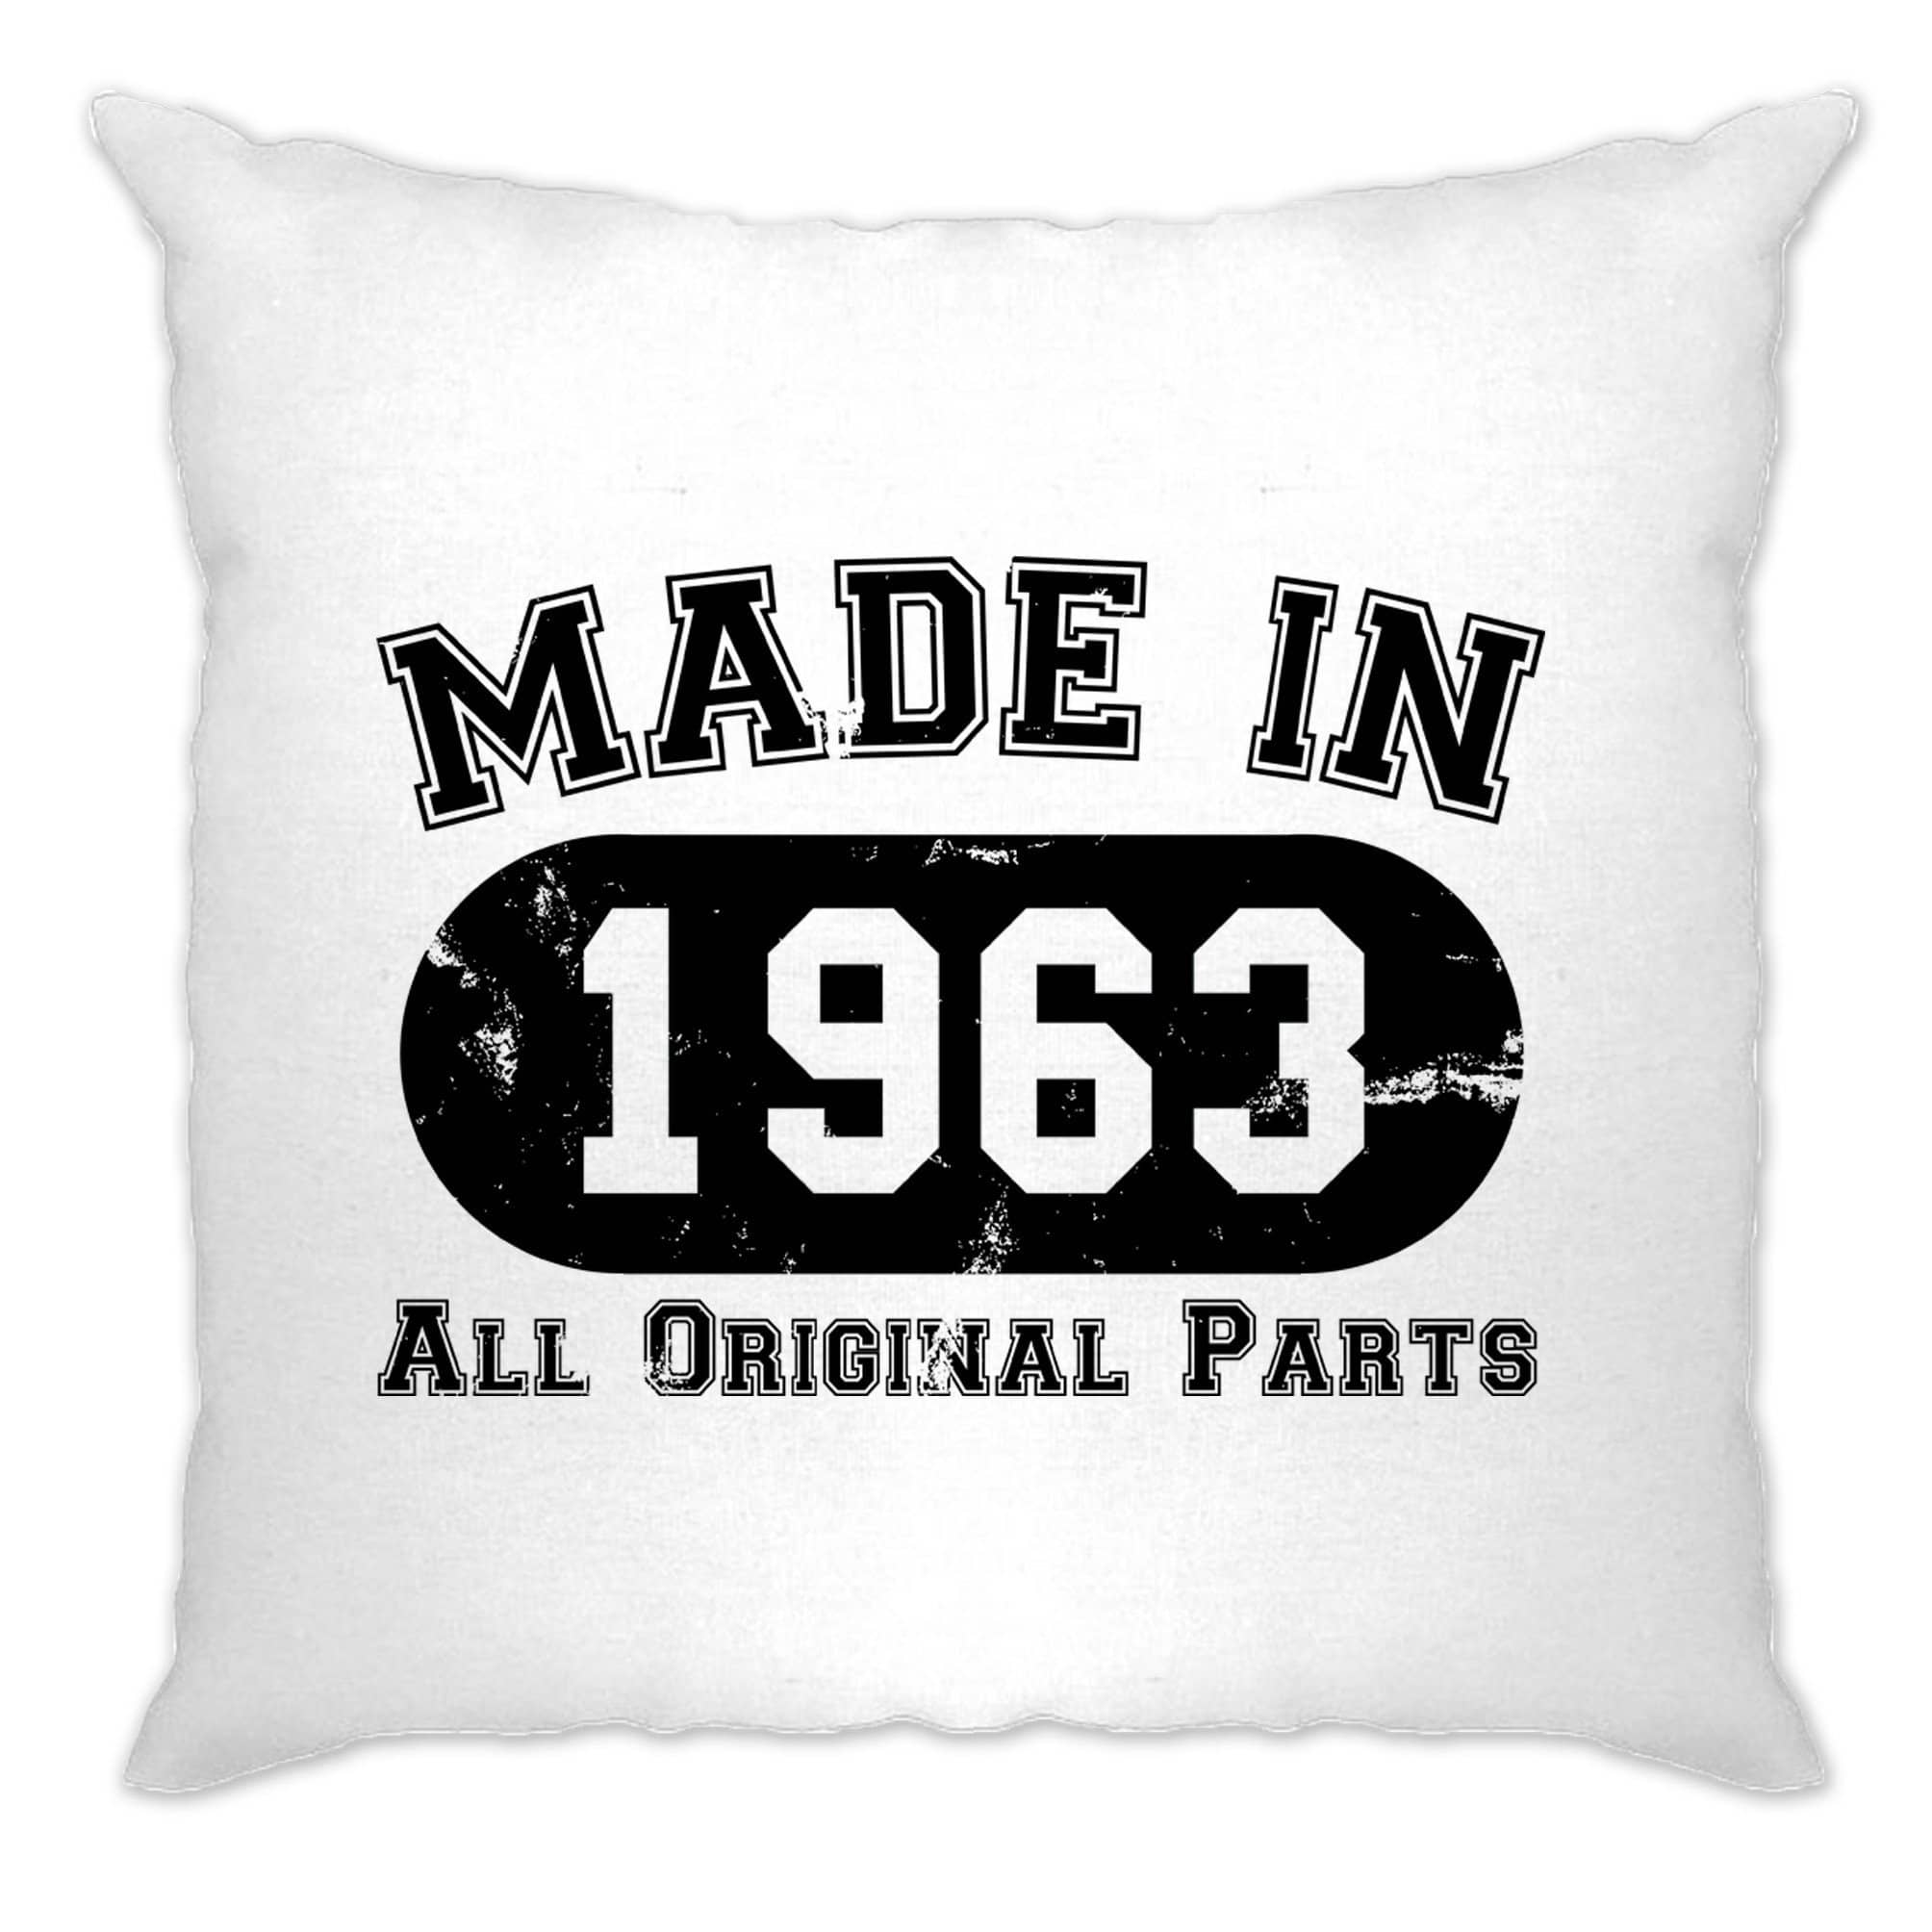 Made in 1963 All Original Parts Cushion Cover [Distressed]